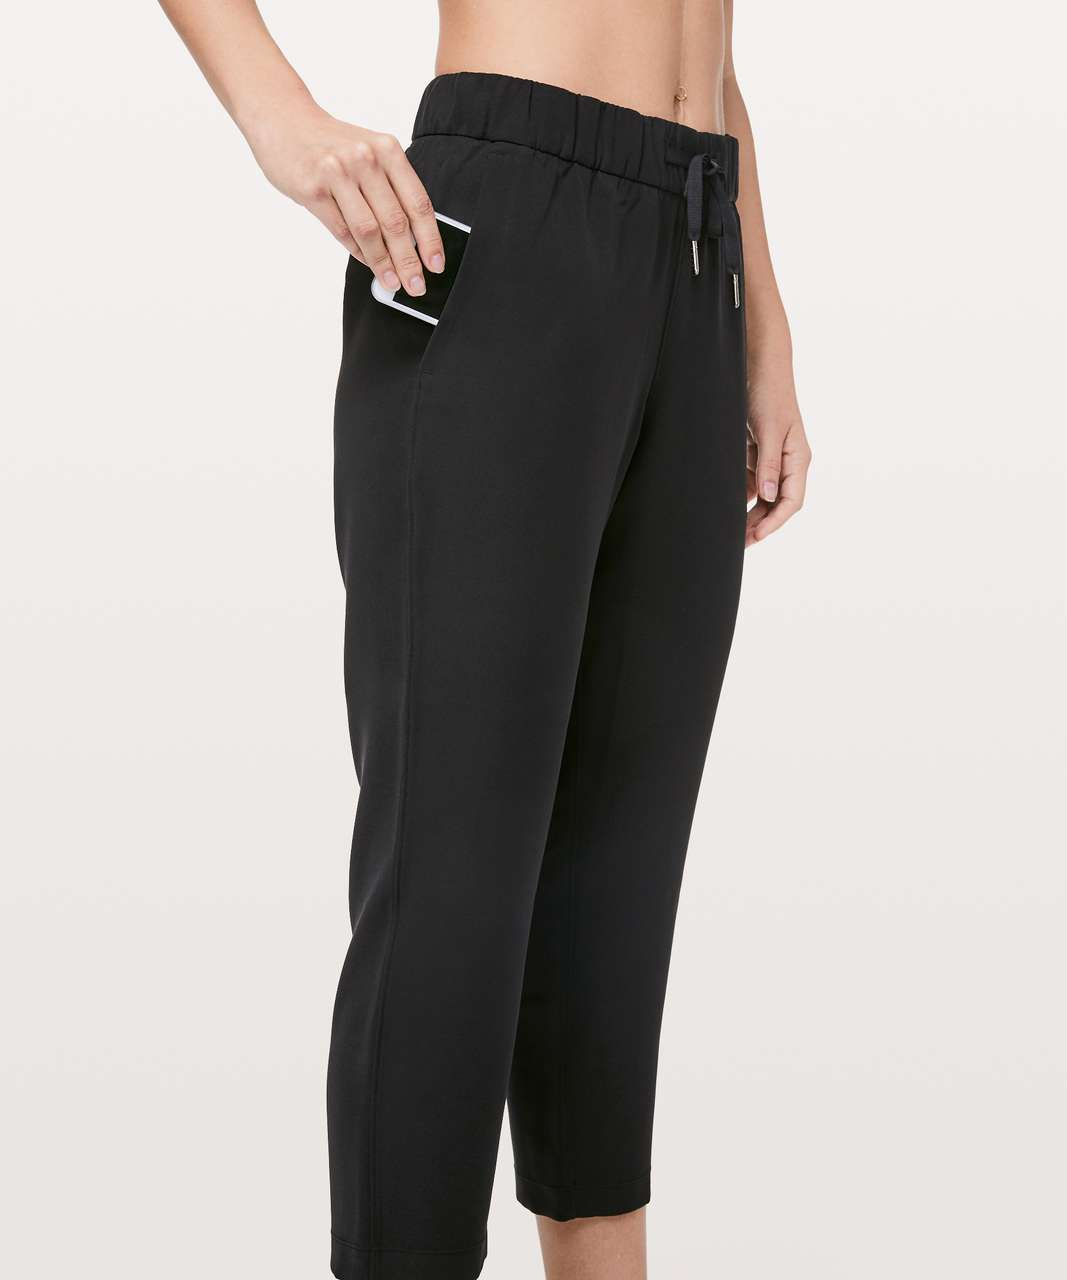 "Lululemon On The Fly Crop *Woven 23"" - Black"